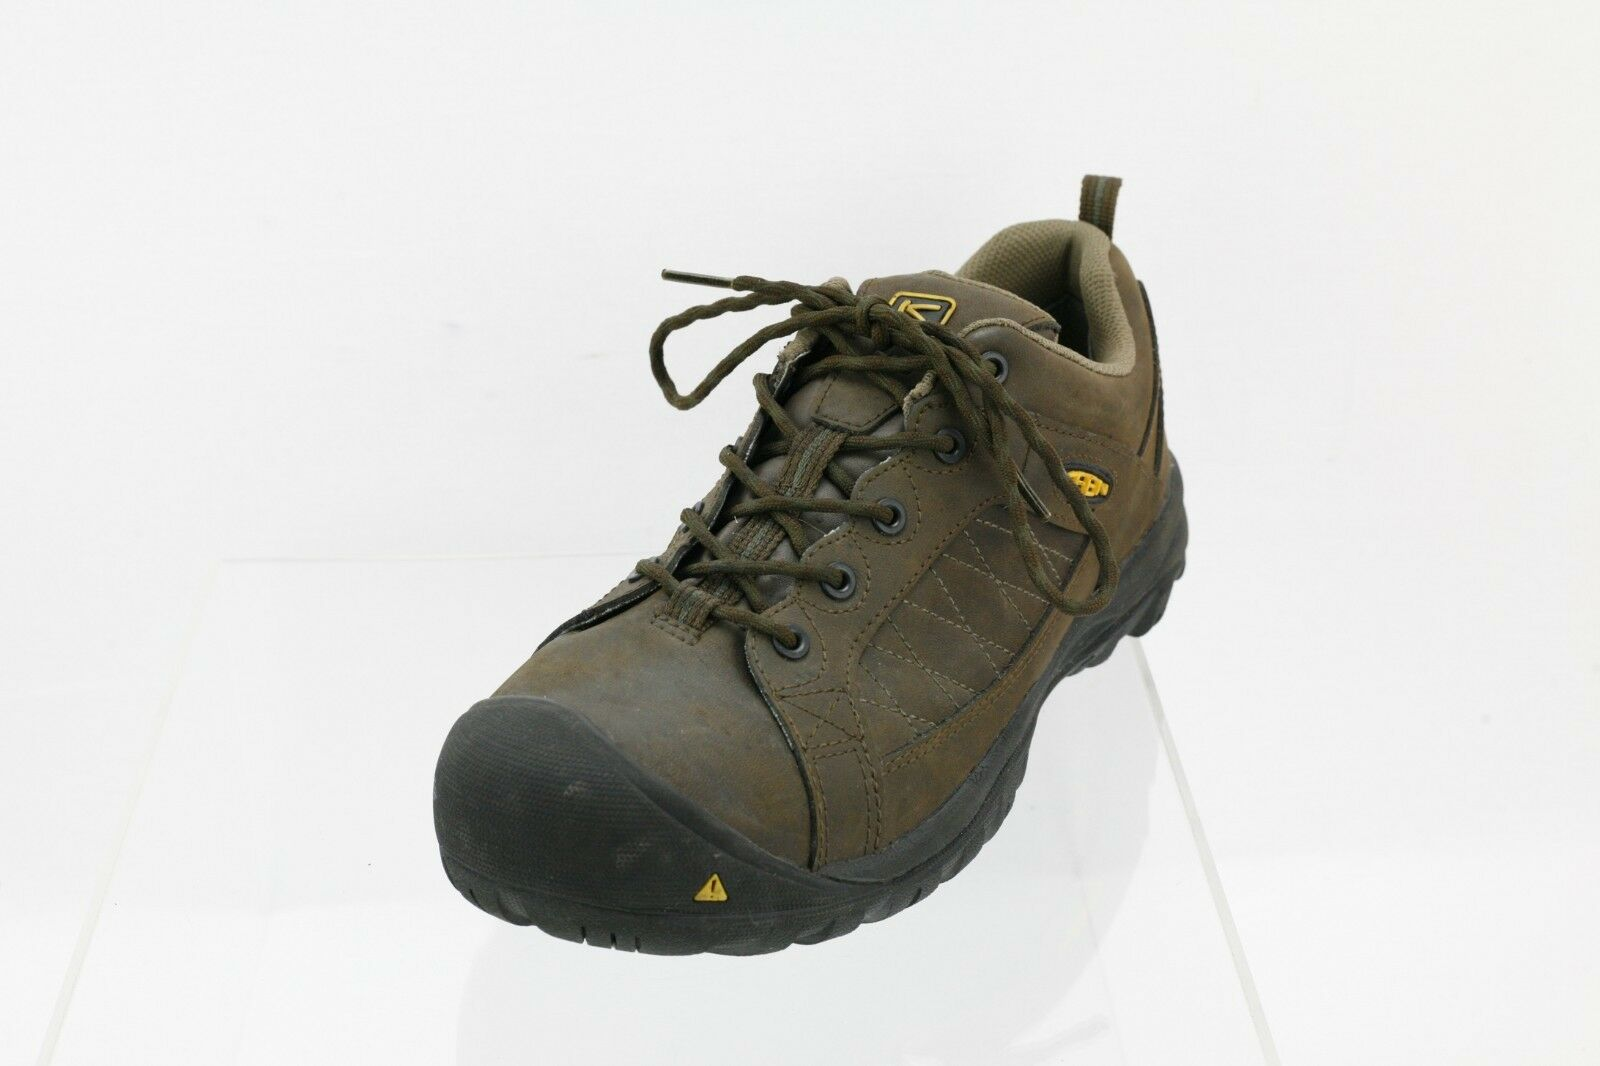 Men's Keen F2413-11 Brown Lace-up Steel Toe Work shoes Size 10 M